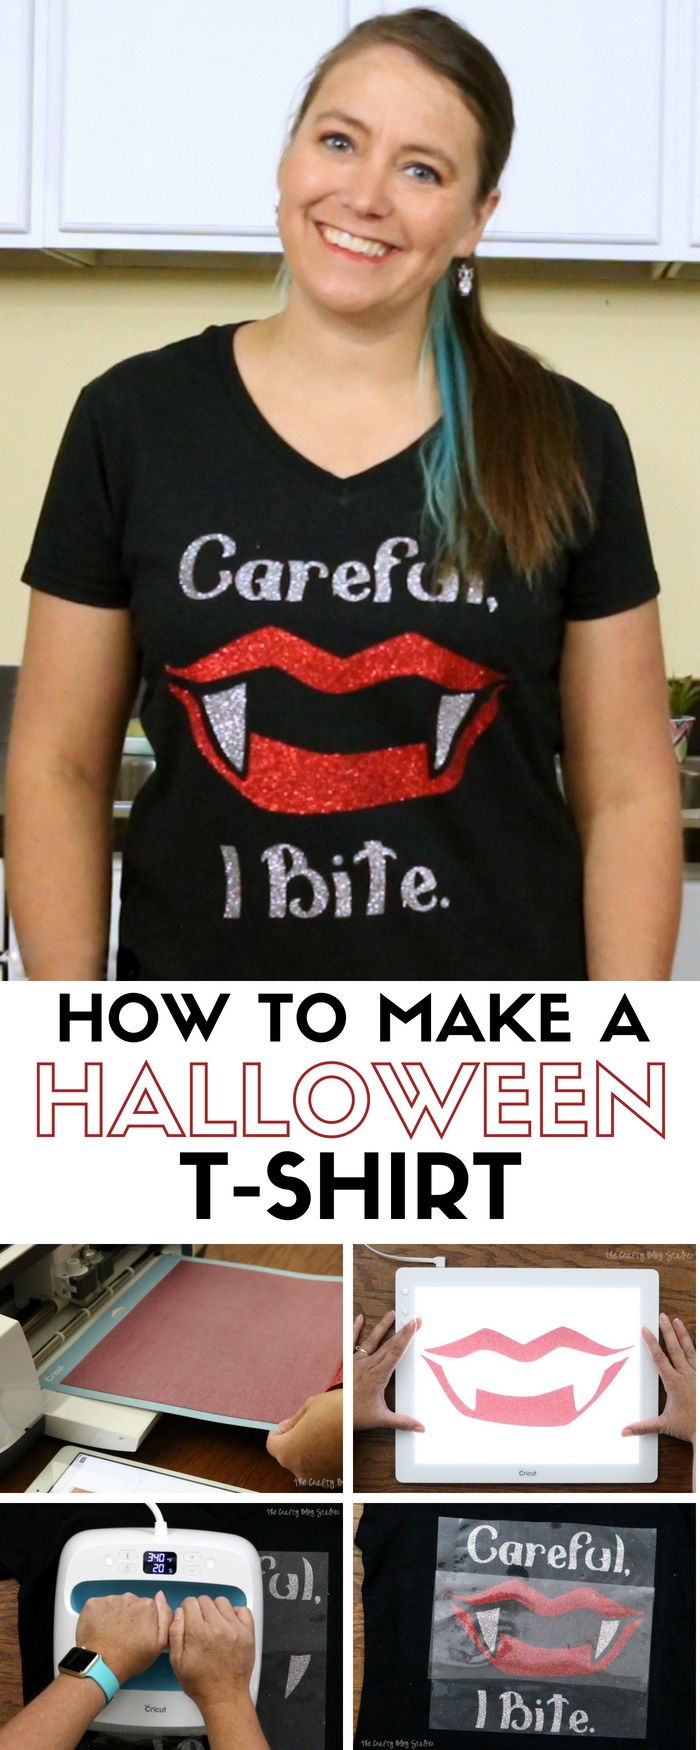 Halloween T Shirt Ideas Diy.How To Make A Halloween Shirt With Glitter Iron On And The